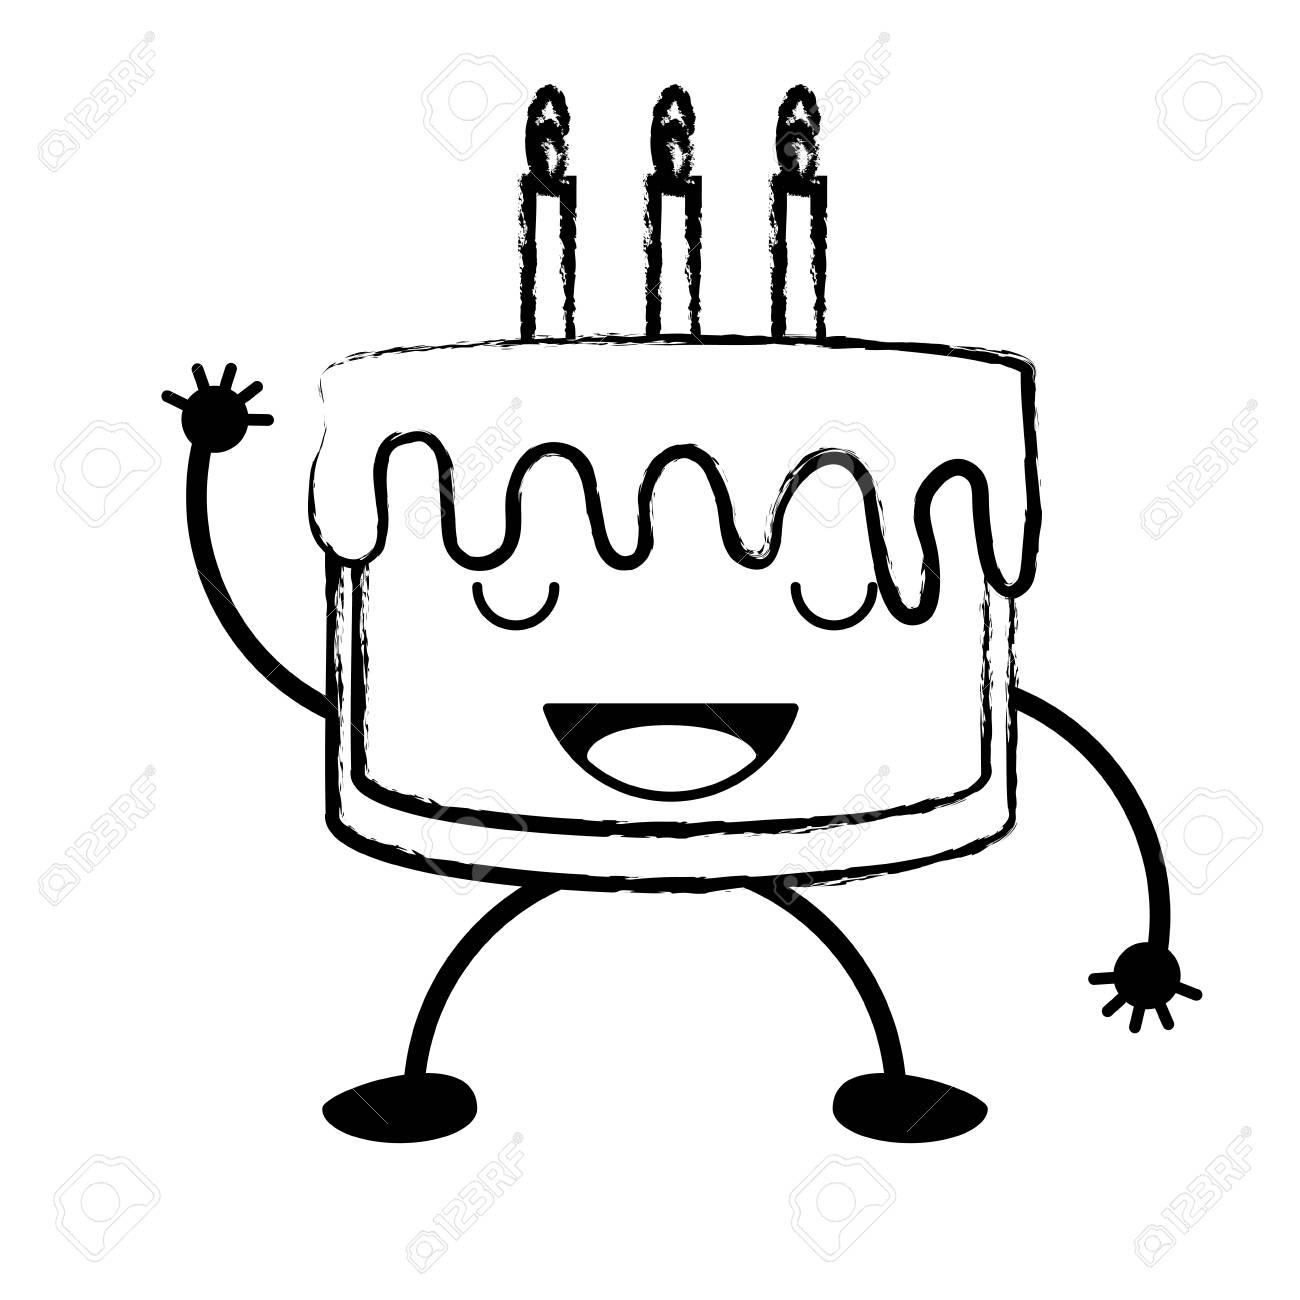 Sketch Of Birthday Cake Showing The Tongue Over White Background